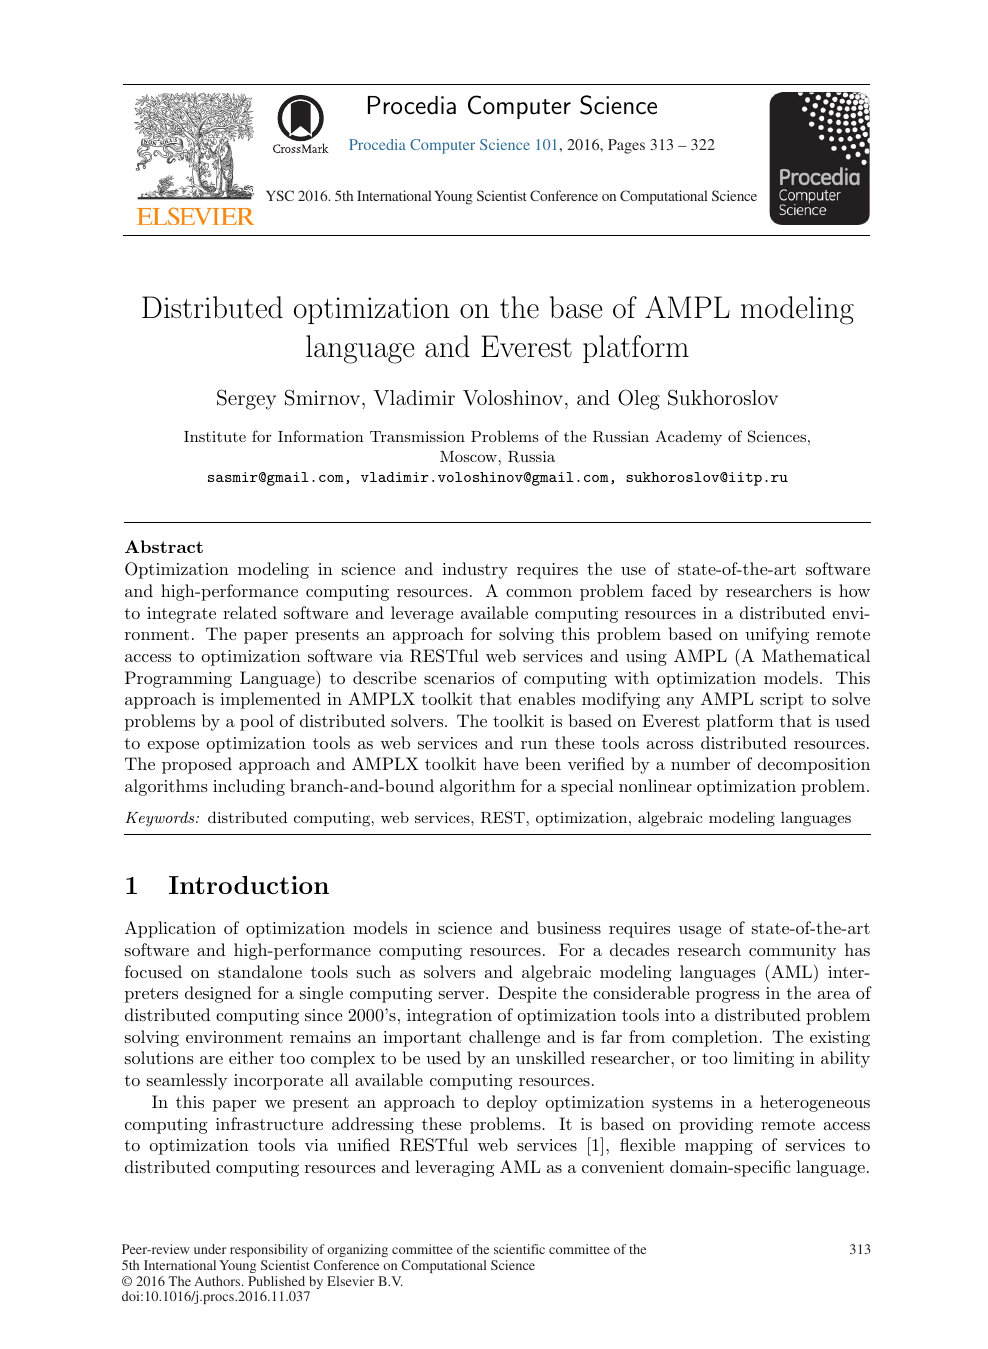 Distributed Optimization on the Base of AMPL Modeling Language and